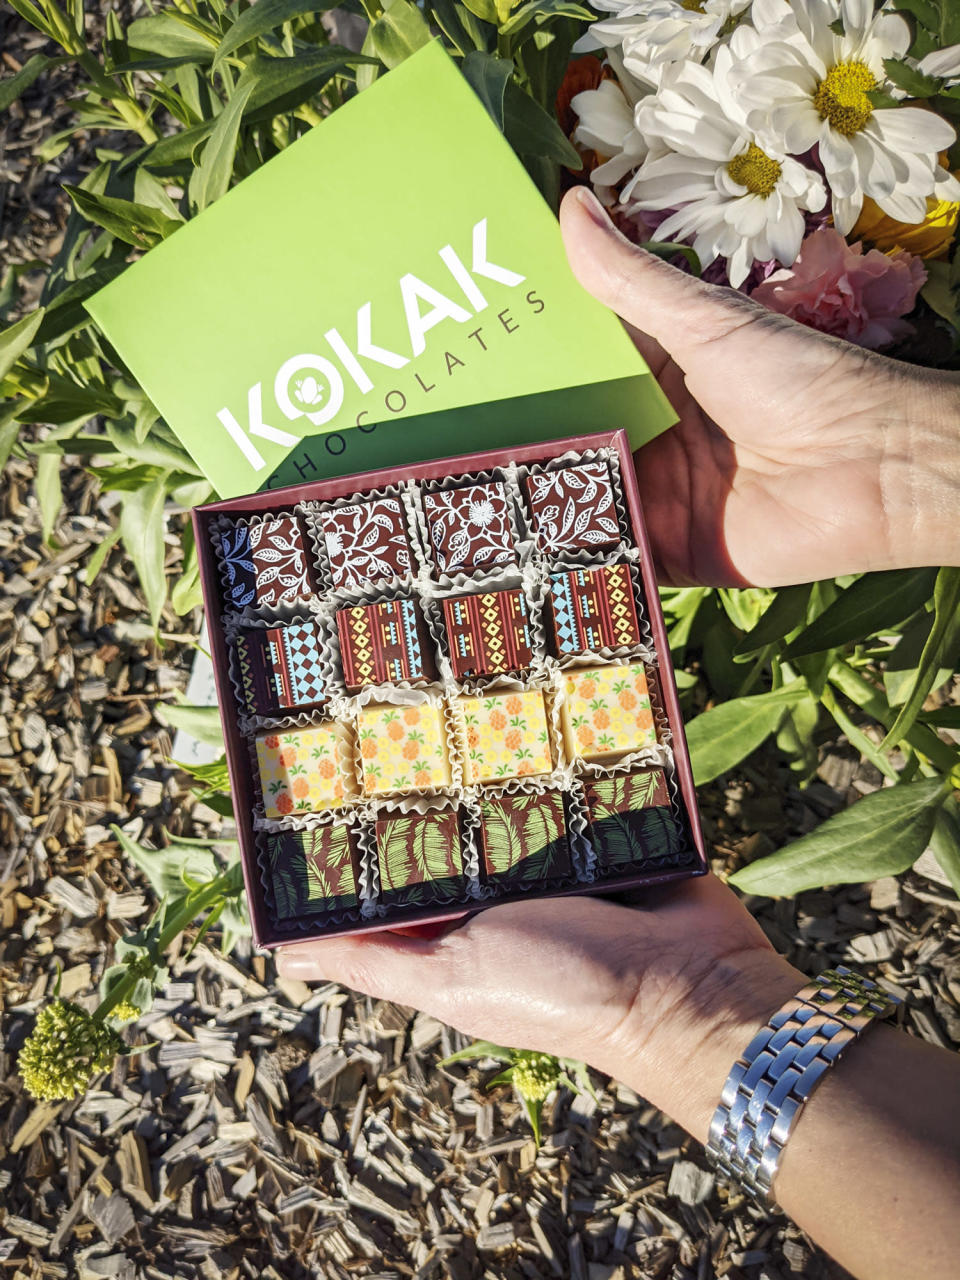 """<p>Mom's tastebuds will go on a tropical vacation when she indulges in these velvety smooth mango, passion fruit, and pineapple-flavored <a href=""""https://www.kokakchocolates.com/product/ttf/123?cs=true&cst=custom"""" rel=""""nofollow noopener"""" target=""""_blank"""" data-ylk=""""slk:truffles"""" class=""""link rapid-noclick-resp"""">truffles</a> from Kokak Chocolates.</p> <p><strong>$23.50-$40.95, <a href=""""https://www.kokakchocolates.com/product/ttf/123?cs=true&cst=custom"""" rel=""""nofollow noopener"""" target=""""_blank"""" data-ylk=""""slk:kokakchocolates.com"""" class=""""link rapid-noclick-resp"""">kokakchocolates.com</a></strong></p> <p><strong>*Use discount code MOM21 for 5% off </strong></p>"""